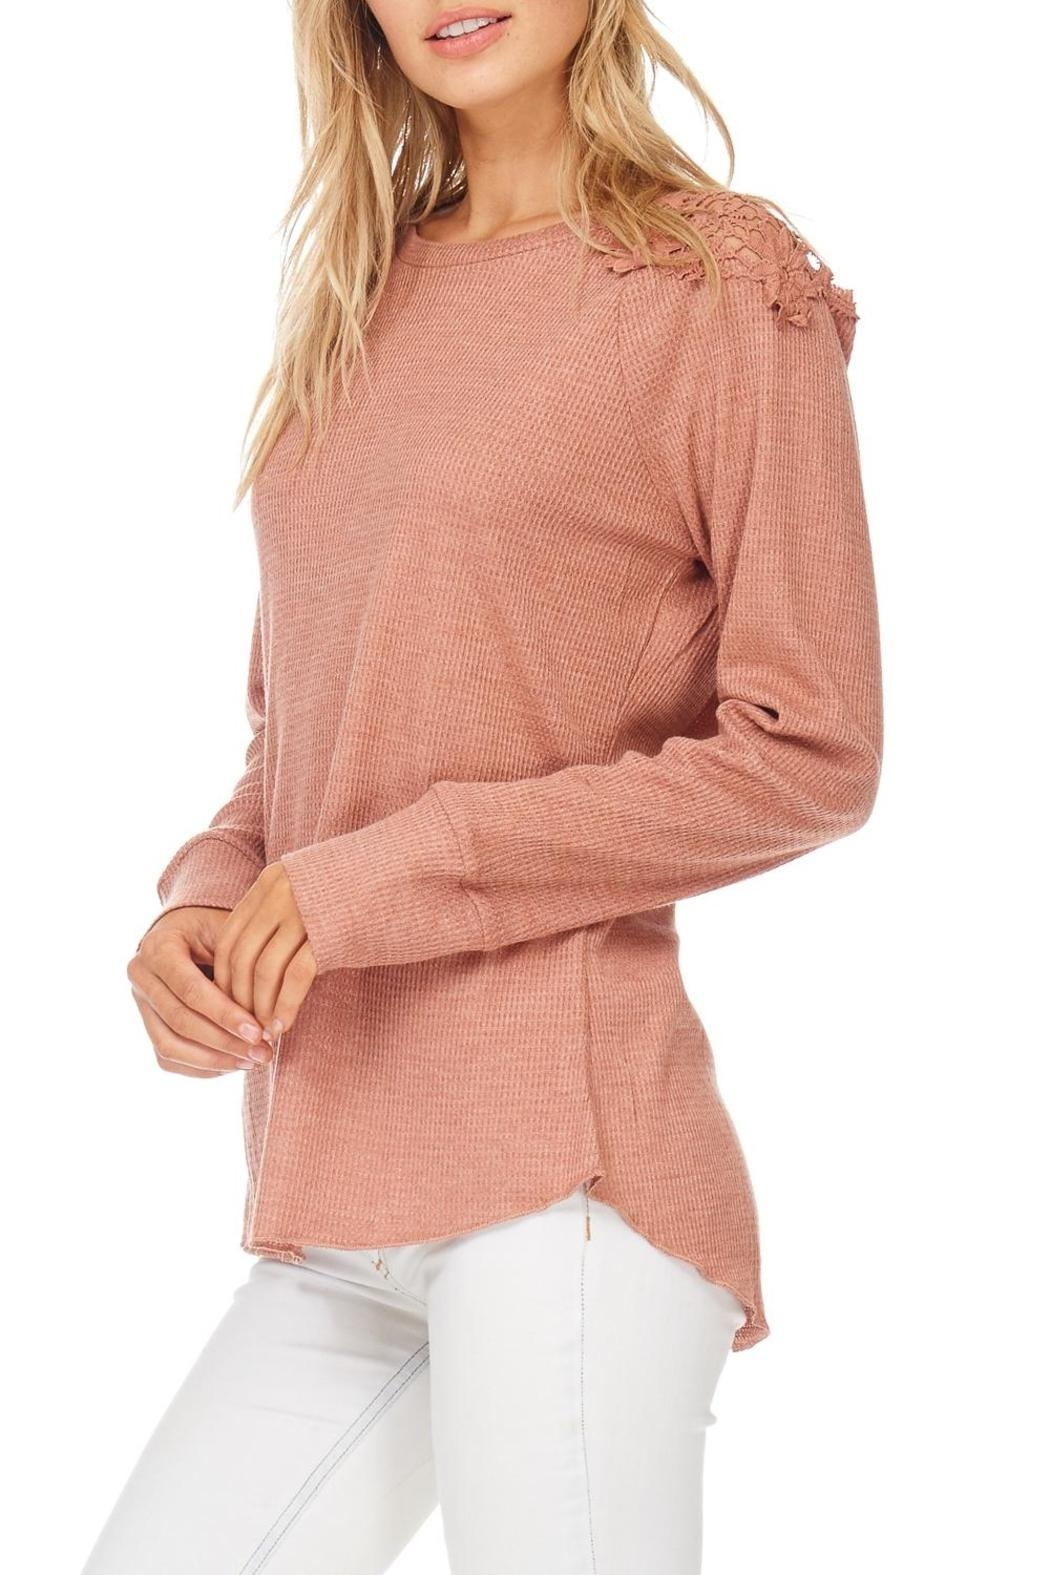 Hem & Thread Blush Lace Shoulder Top - Front Full Image